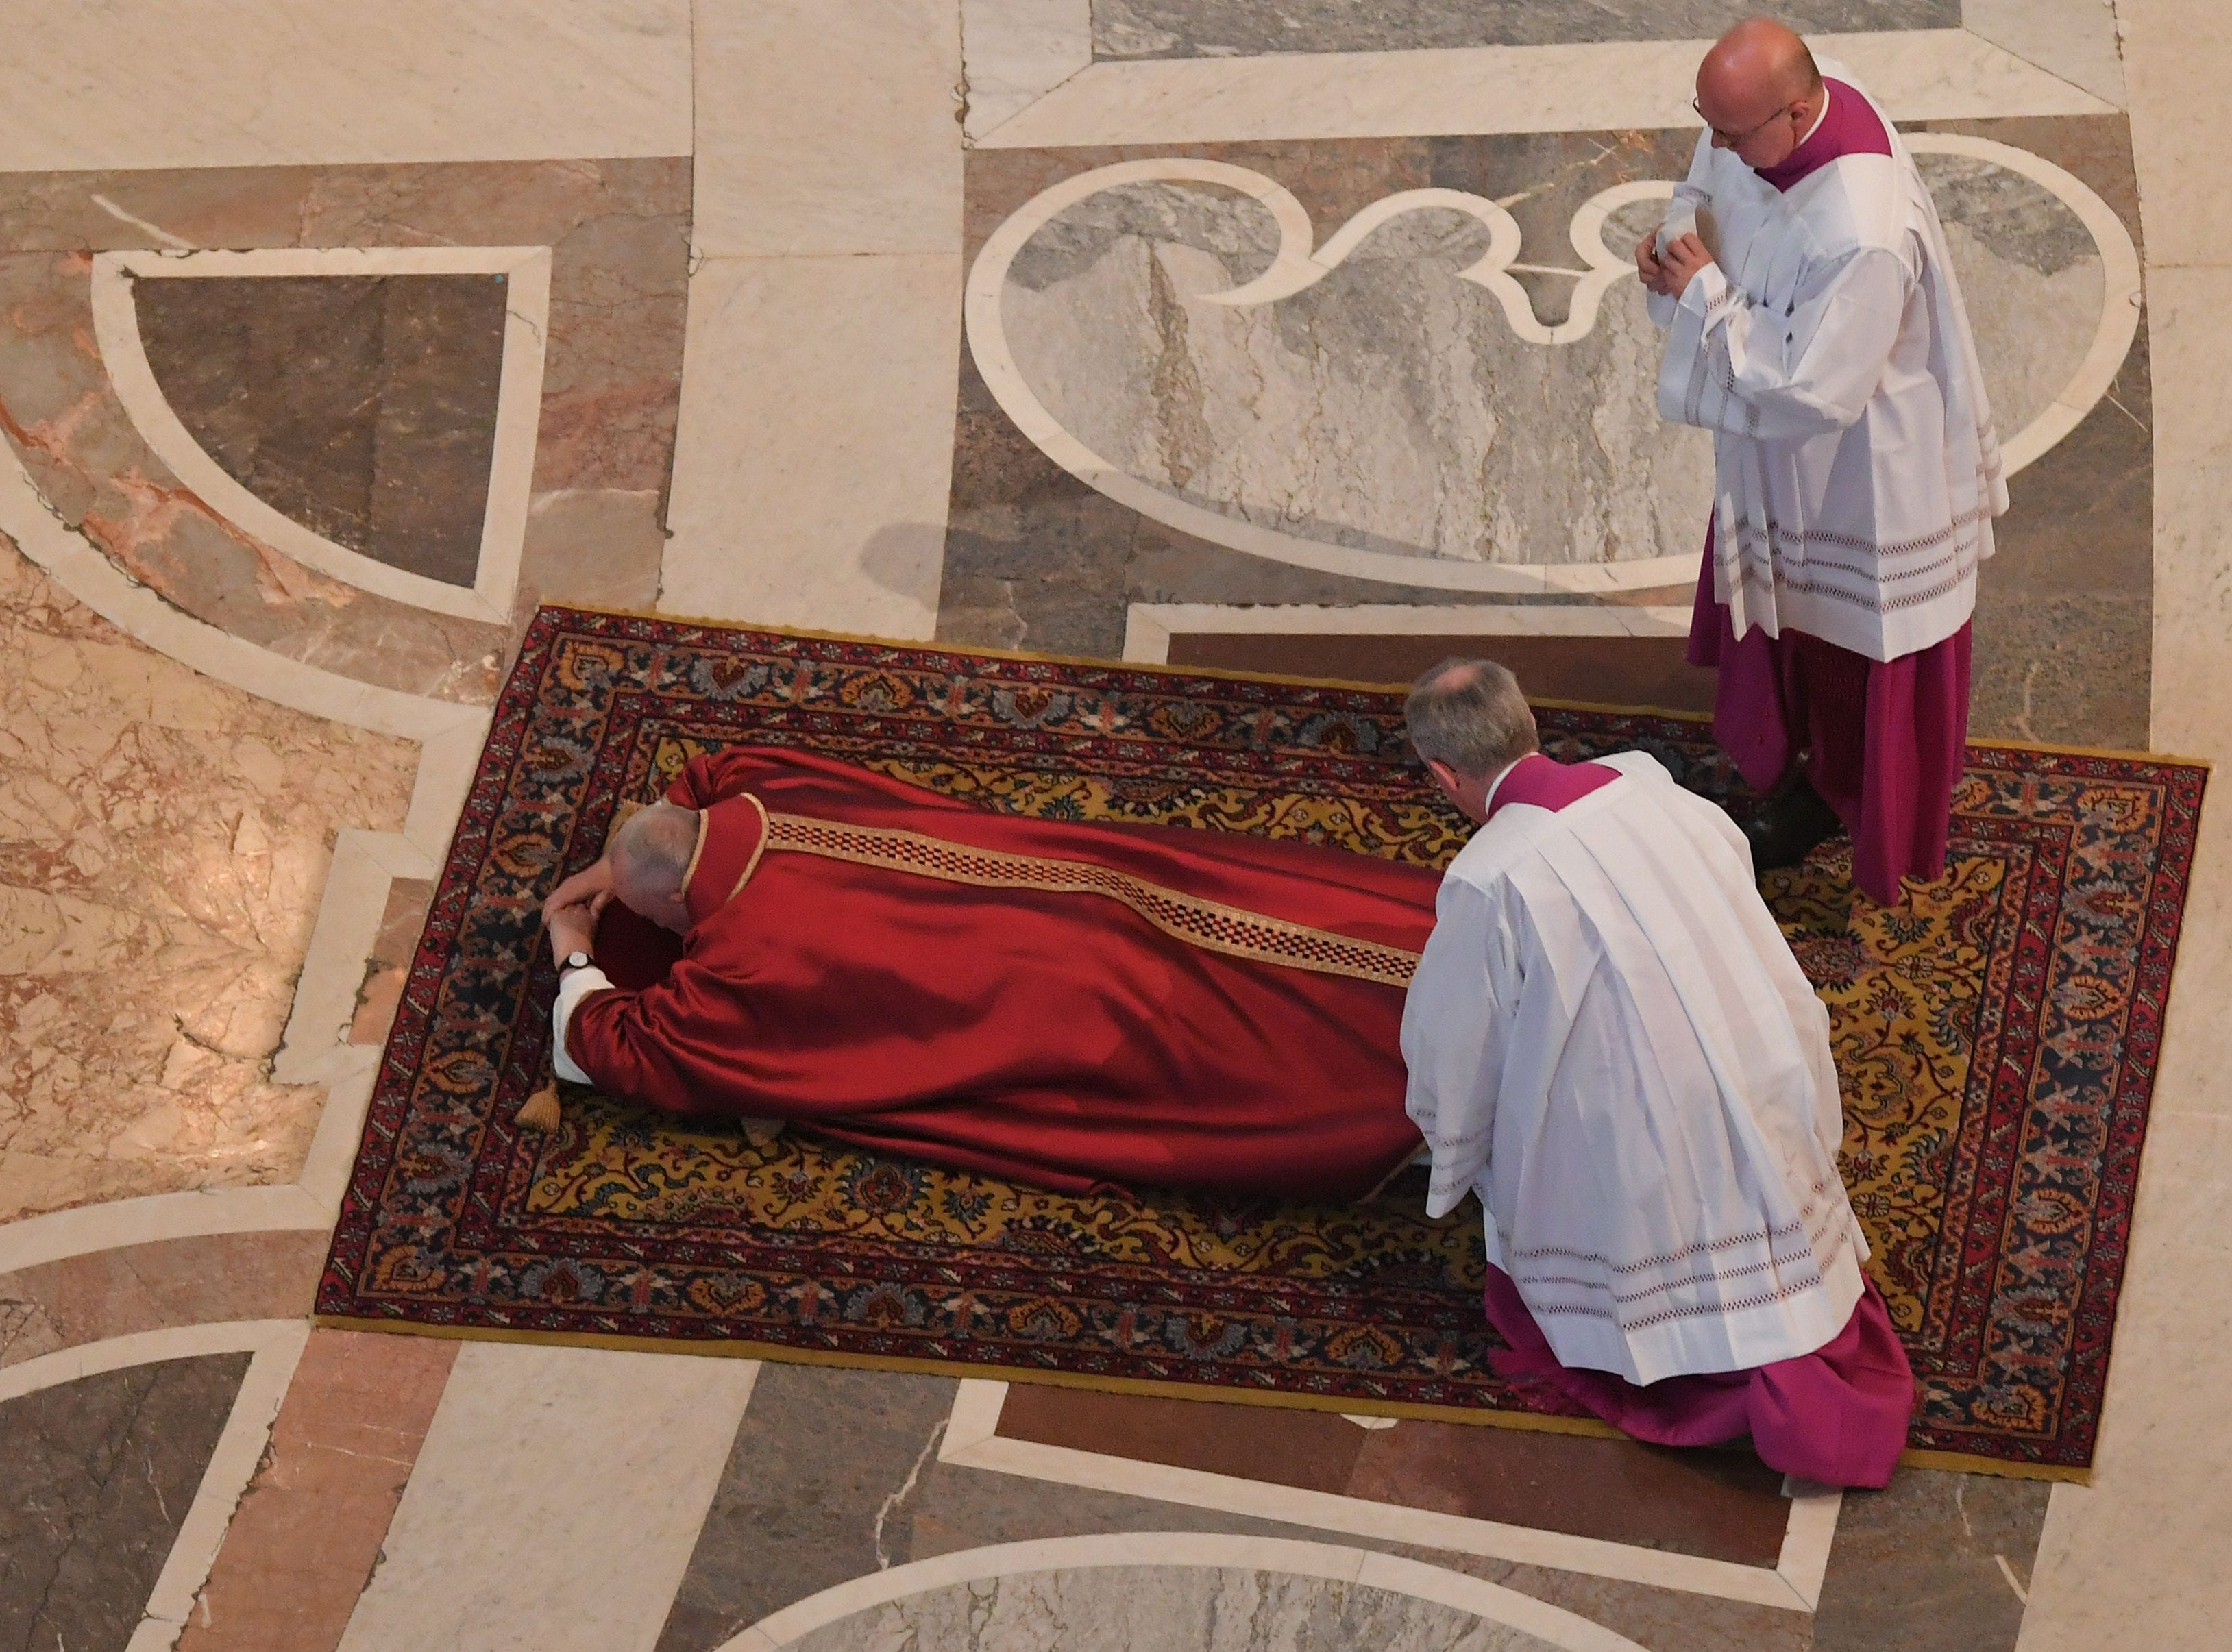 Papal Master of Ceremonies, Monsignor Guido Marini (R) arranges Pope Francis' cloth as the Pope prays during the Celebration of the Lord's Passion on Good Friday at St Peter's Basilica, on April 19, 2019 in the Vatican. - Christians around the world are marking the Holy Week, commemorating the crucifixion of Jesus Christ, leading up to his resurrection on Easter. (Photo by Tiziana FABI / AFP)        (Photo credit should read TIZIANA FABI/AFP/Getty Images)